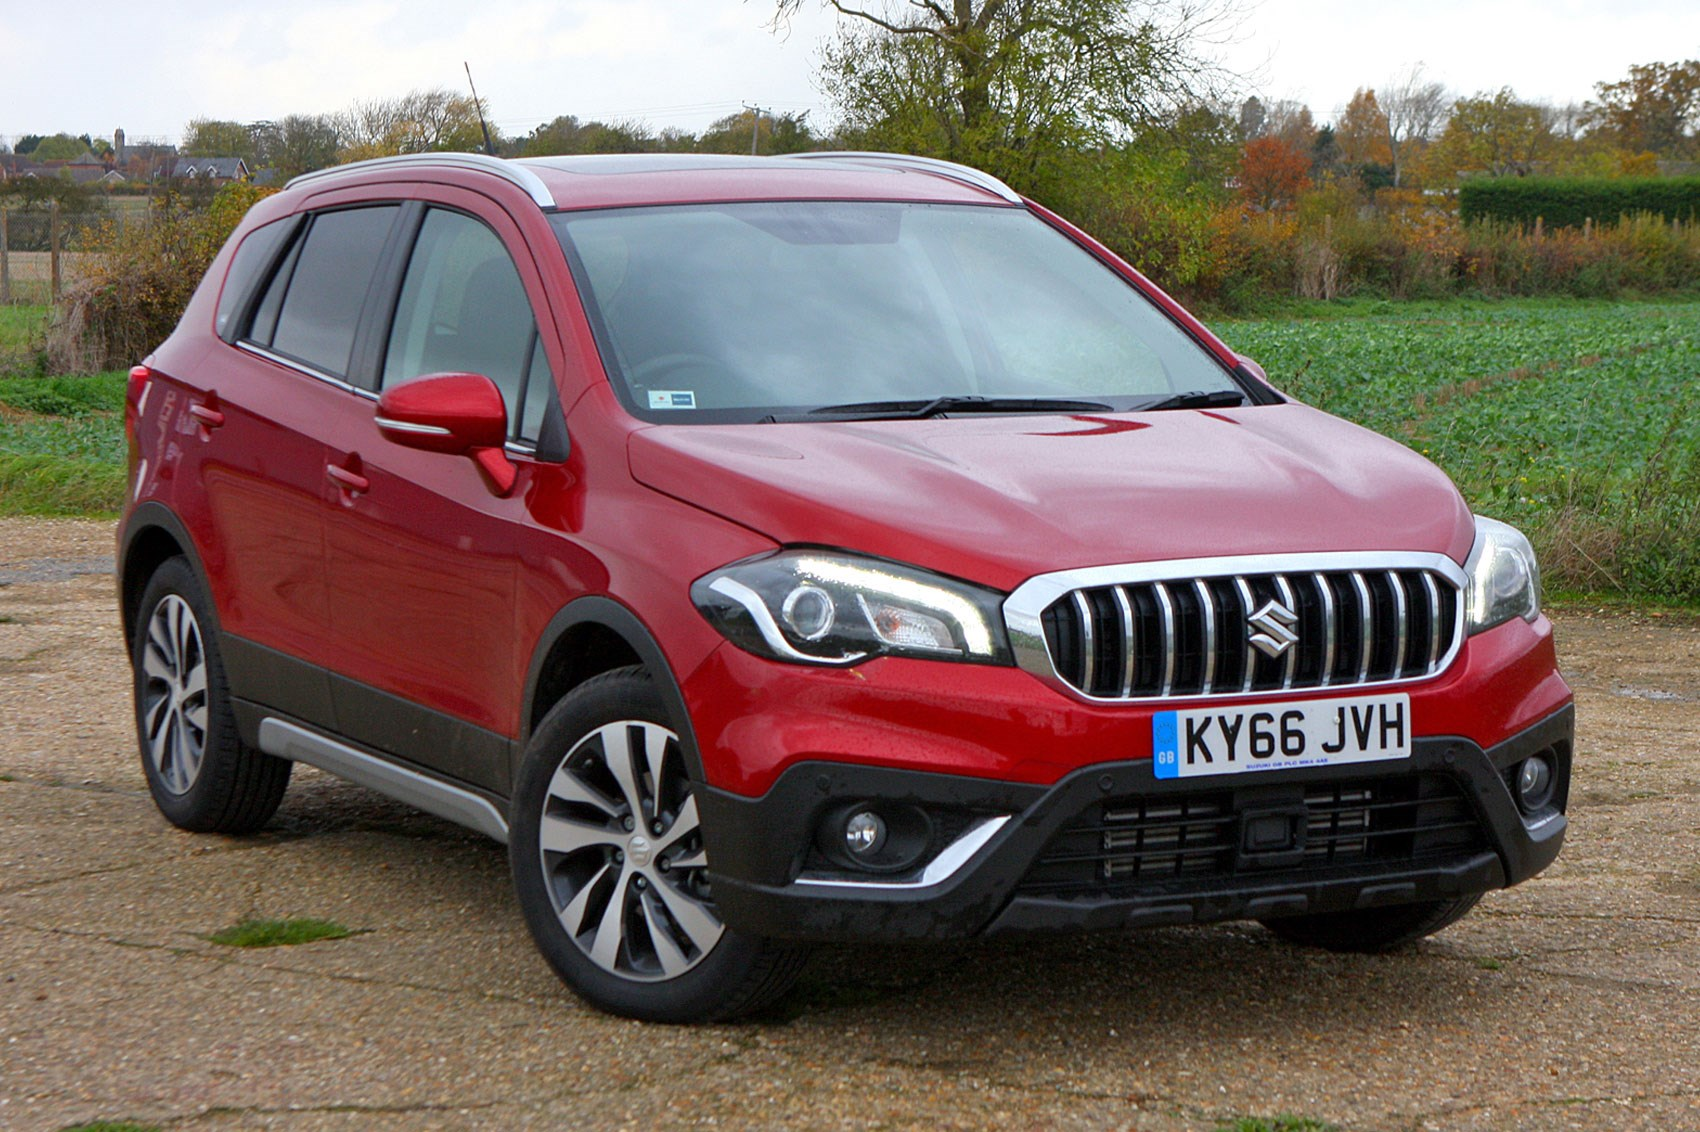 suzuki sx4 s cross 1 4 boosterjet sz5 allgrip 2016 review by car magazine. Black Bedroom Furniture Sets. Home Design Ideas